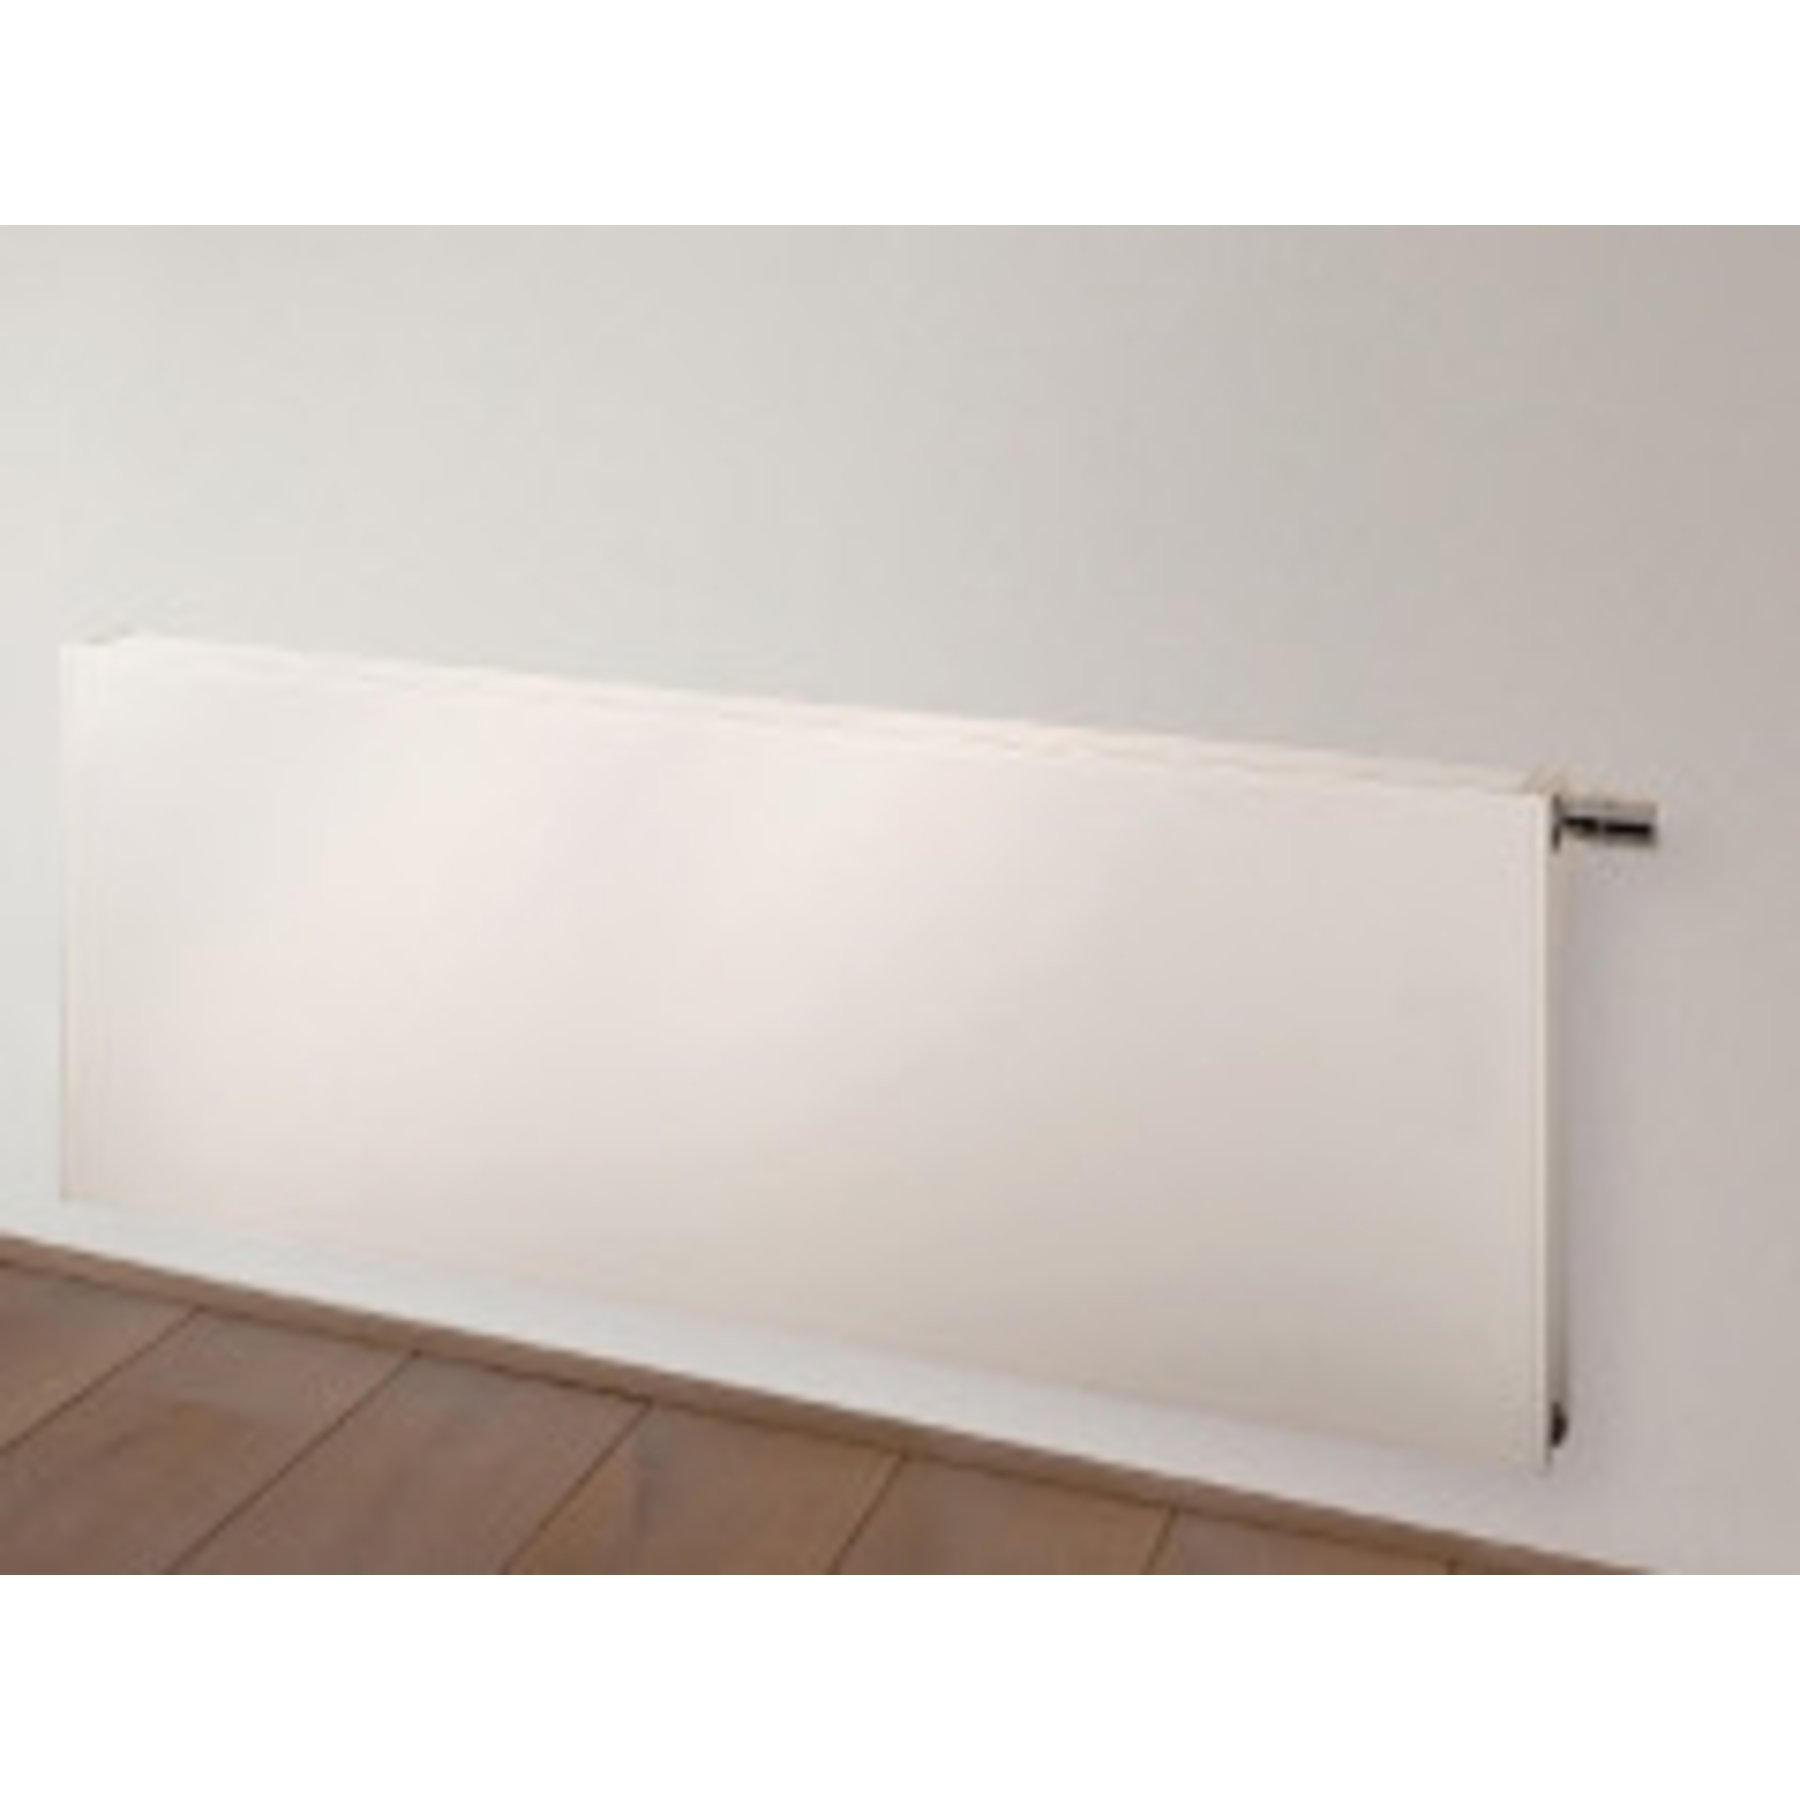 Vasco Flatline Paneelradiator type 22 400x1400mm 1620 watt vlak wit structuur (S600)